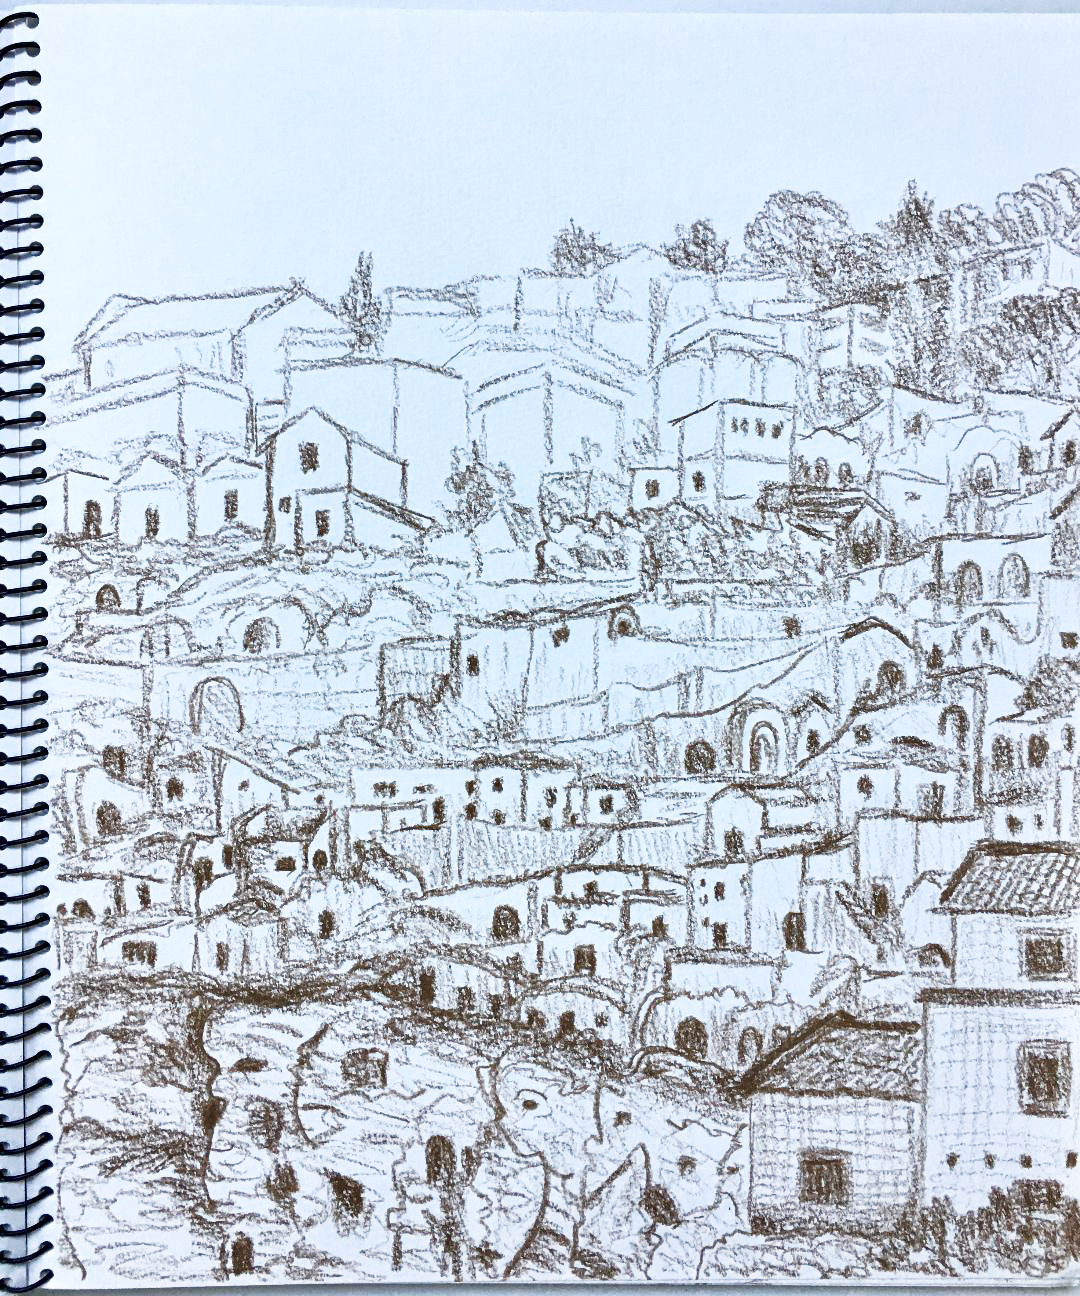 Part of the Sassi, above the Ravine, Matera, Basilicata, Italy 10.8.2012. Prismacolor. J. Cook artist